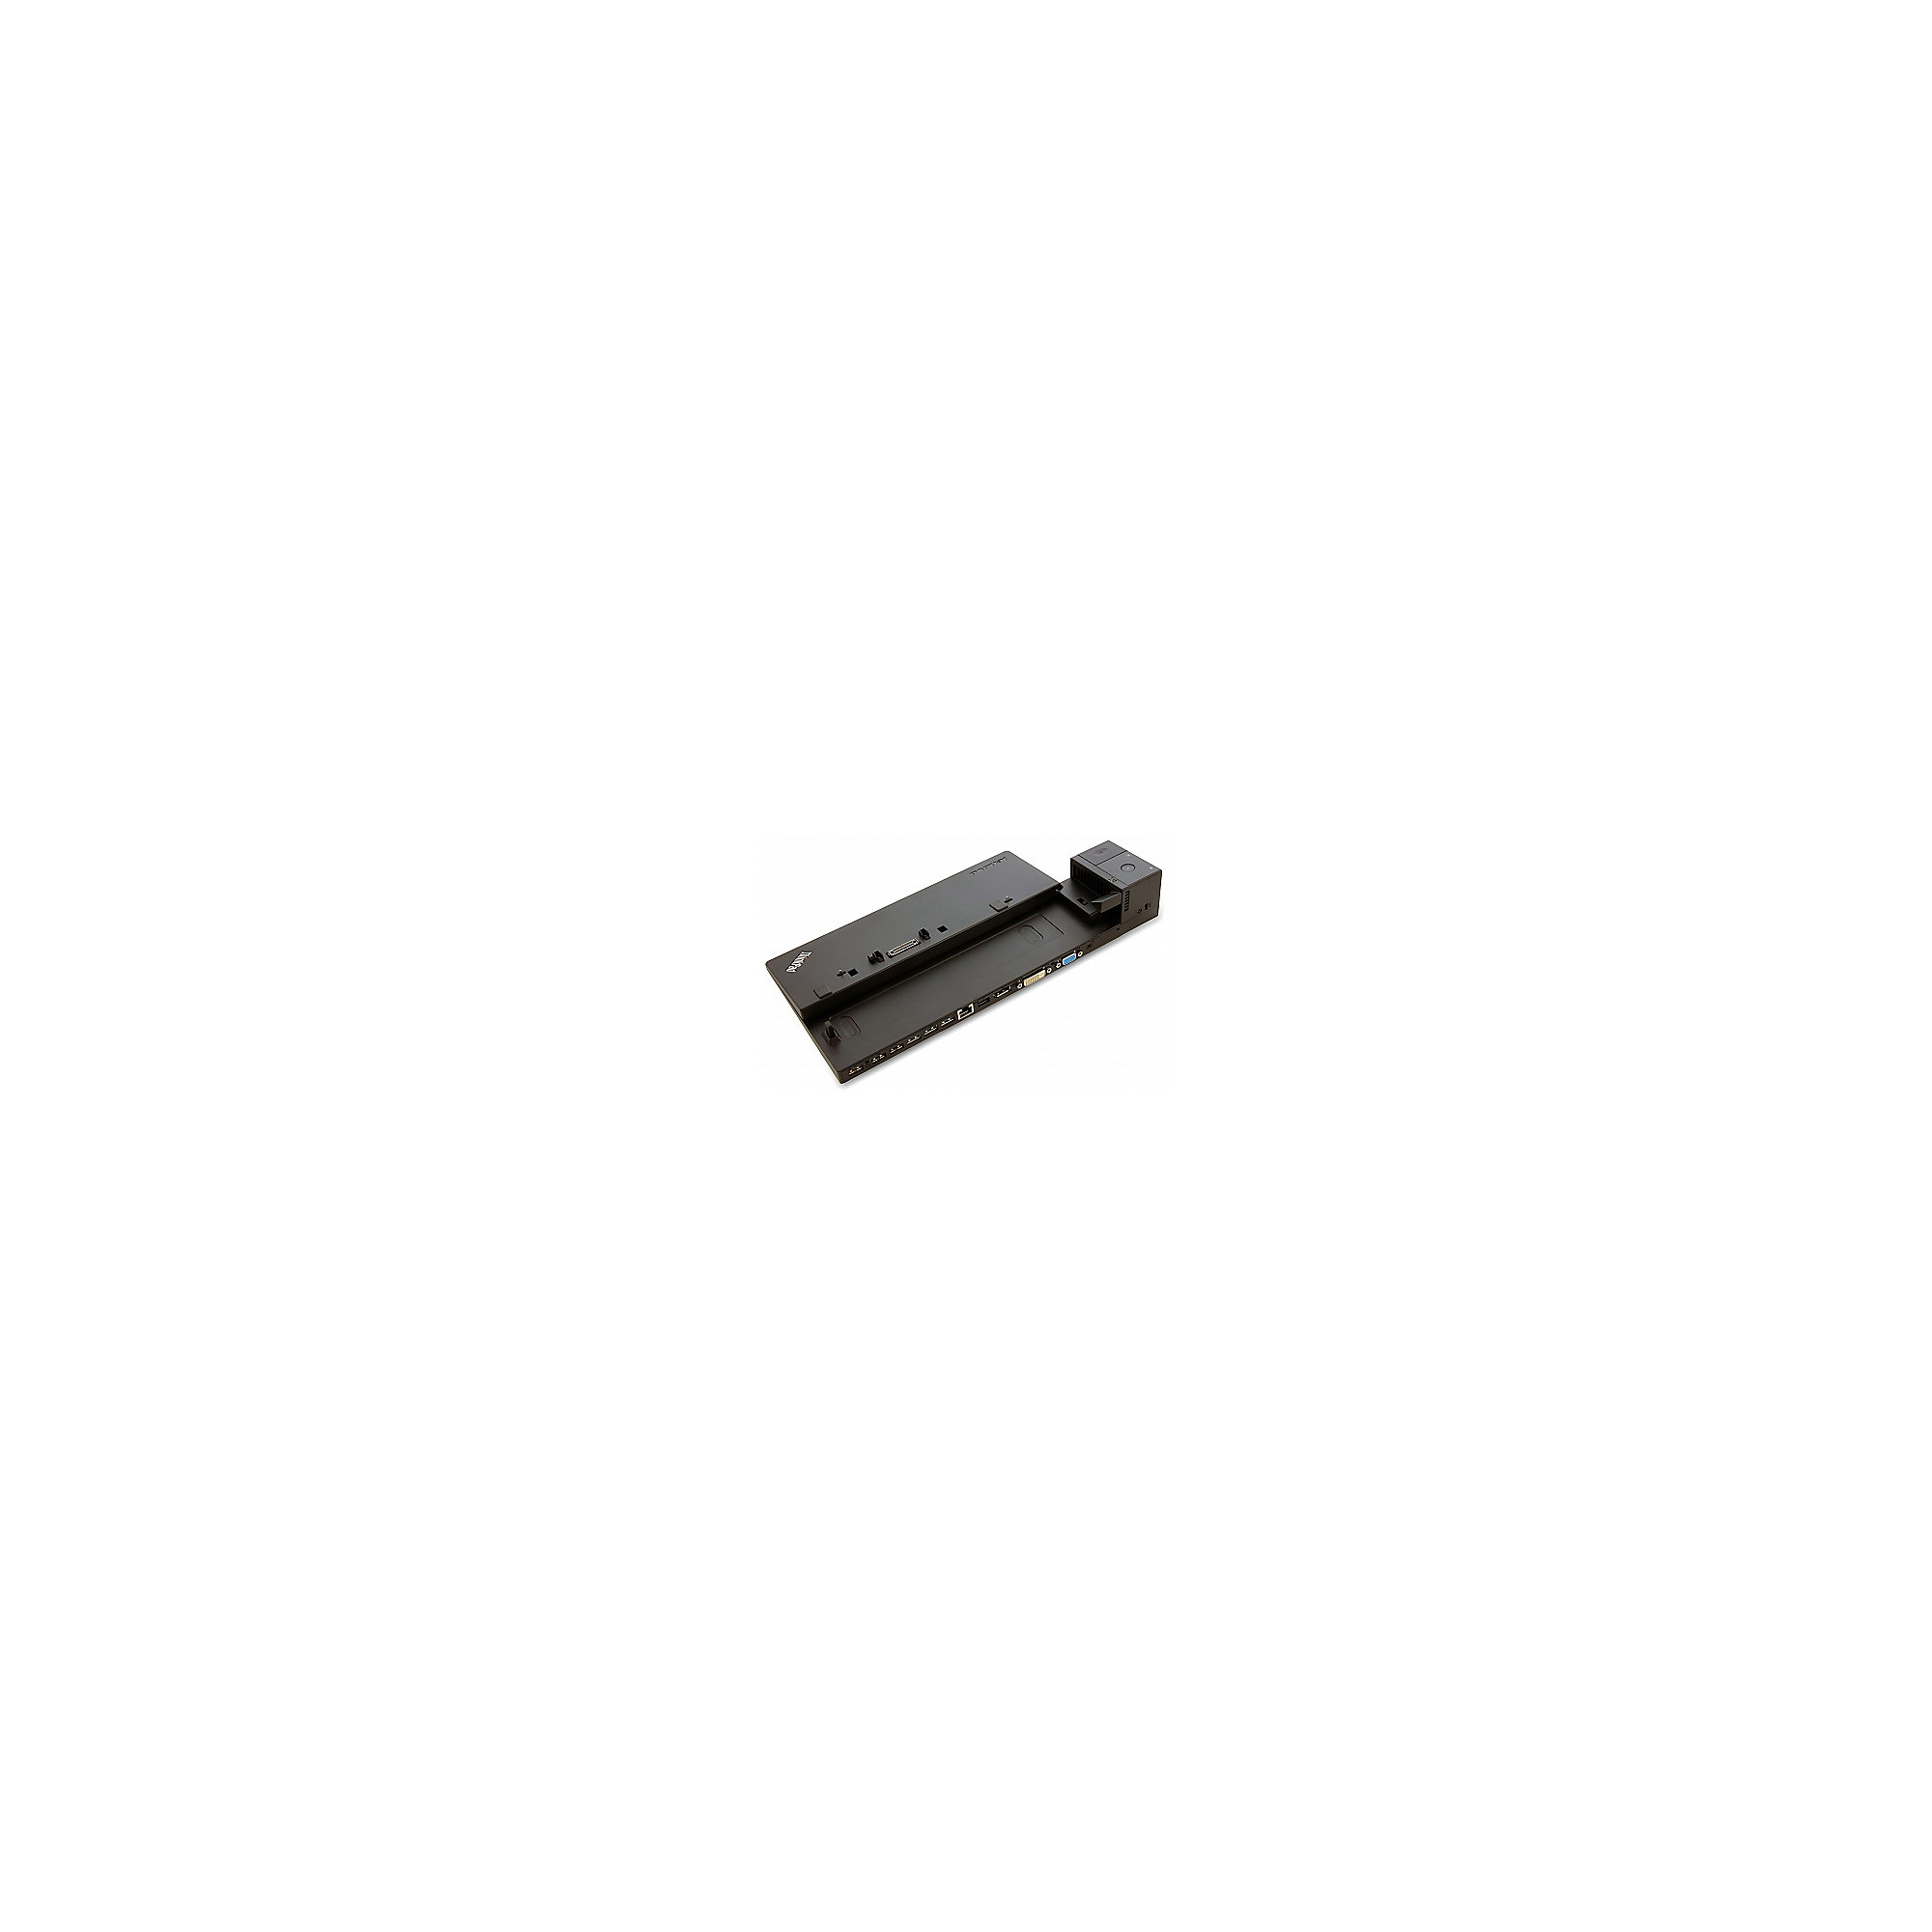 Lenovo Dockingstation für ThinkPad L440, L540, T440, X240 40A10065EU